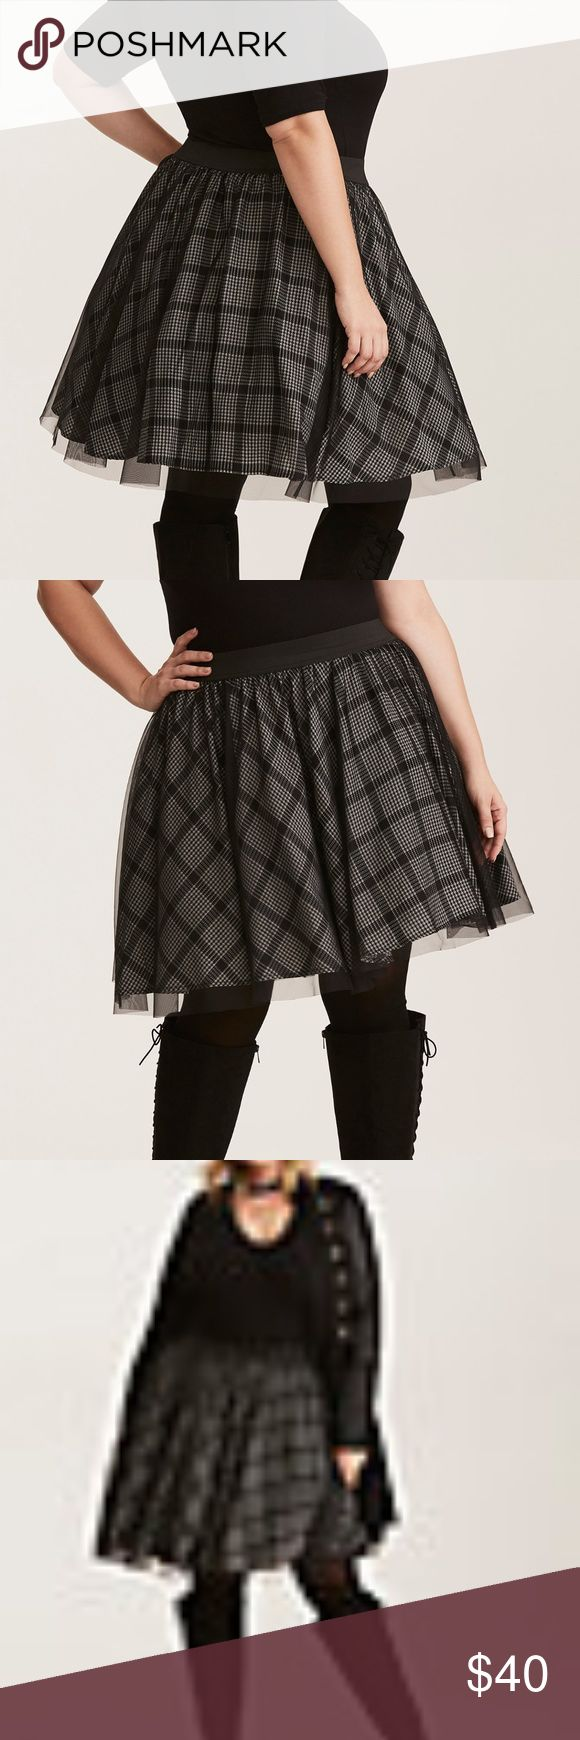 Plaid Print Mesh Tulle Mini Skirt Torrid NWT Plaid Print Mesh Tulle Mini Skirt Super Flair!  Size 0 Plaid to the bone! This mini has major poof in mind with a tulle underlay that'll give any top you pair it with a major kick. The black and grey plaid print mesh adds a sassy look to the stretch waistband style. Polyester/Rayon Hand wash cold, line dry Imported plus size skirt Liner has the bottom with double thick tulle for approx 5 inches to flair without being puffy around the tummy.   NWT…